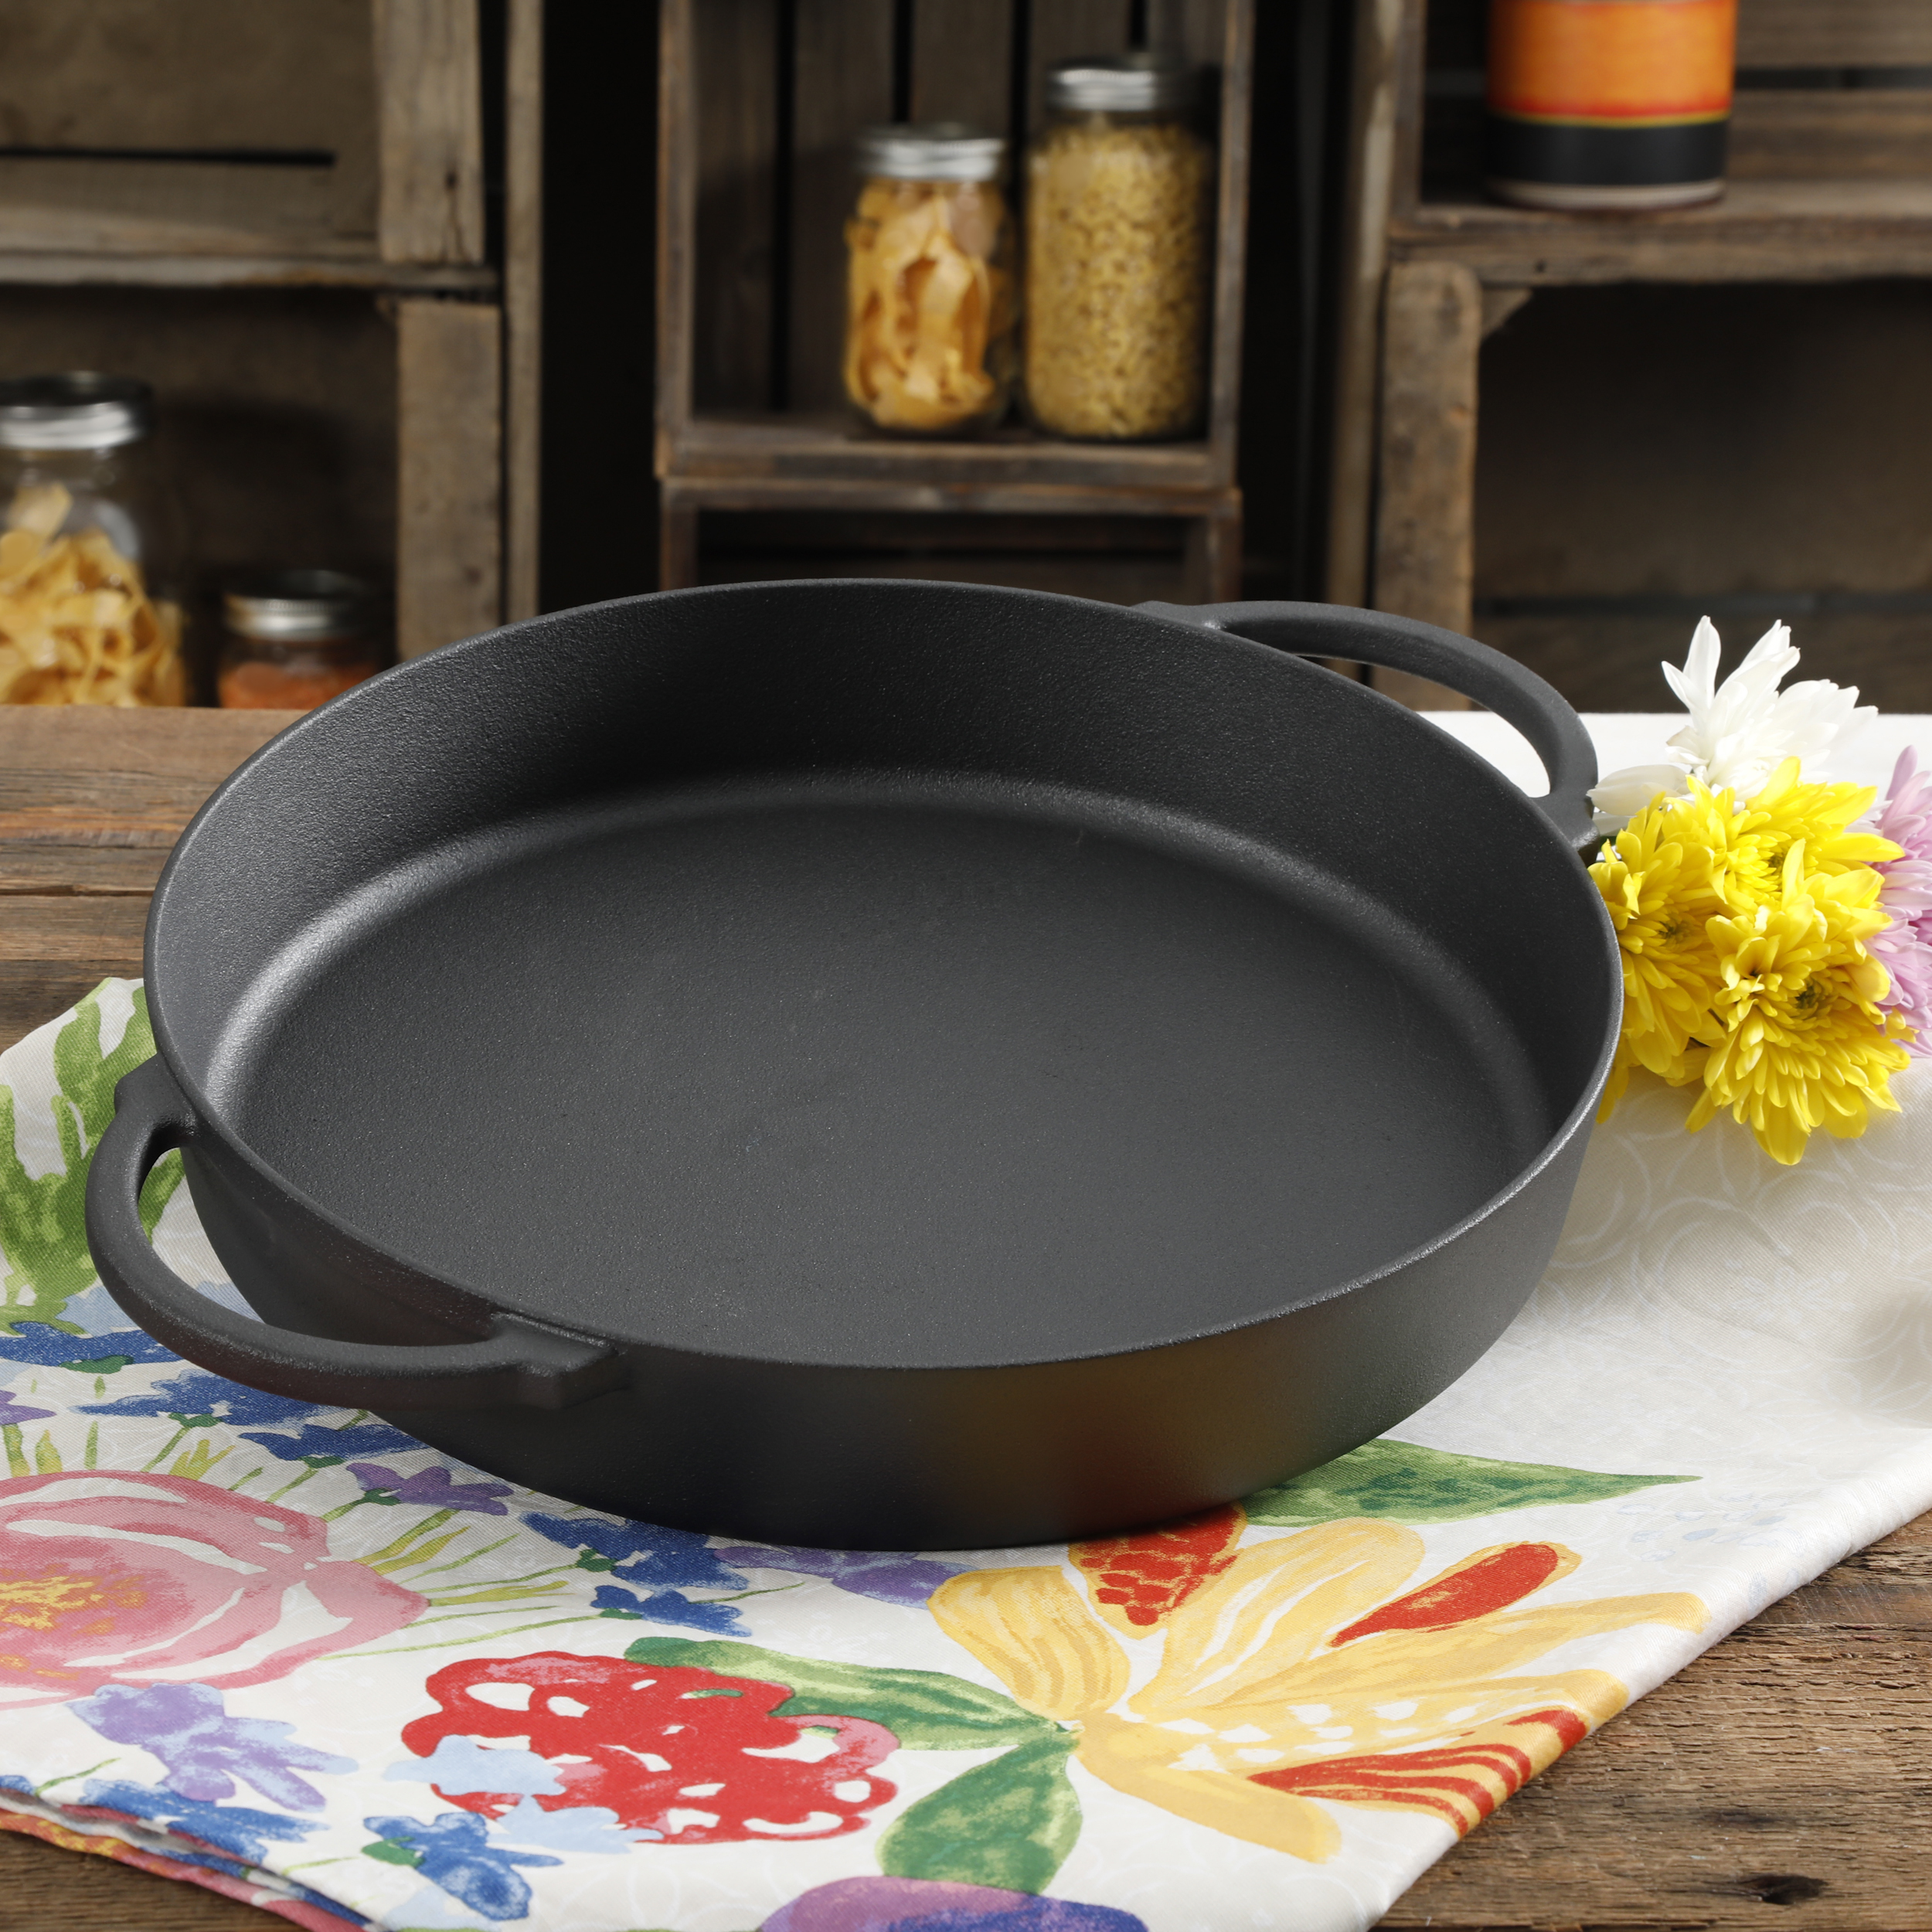 "The Pioneer Woman Pre Season Plus Cast Iron 13.5"" Family Pan"